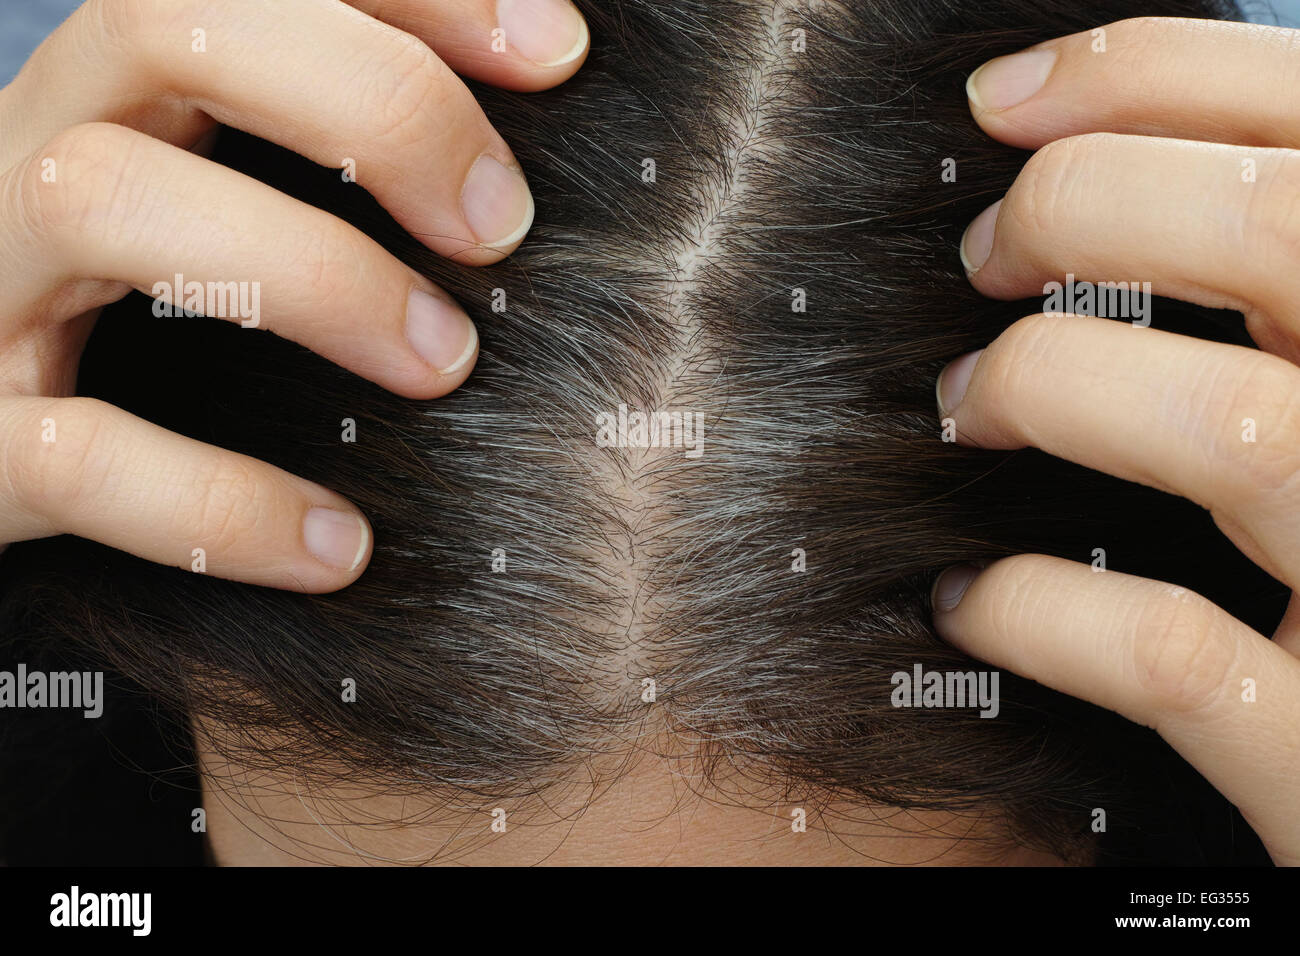 Hair Roots Stock Photos & Hair Roots Stock Images - Alamy